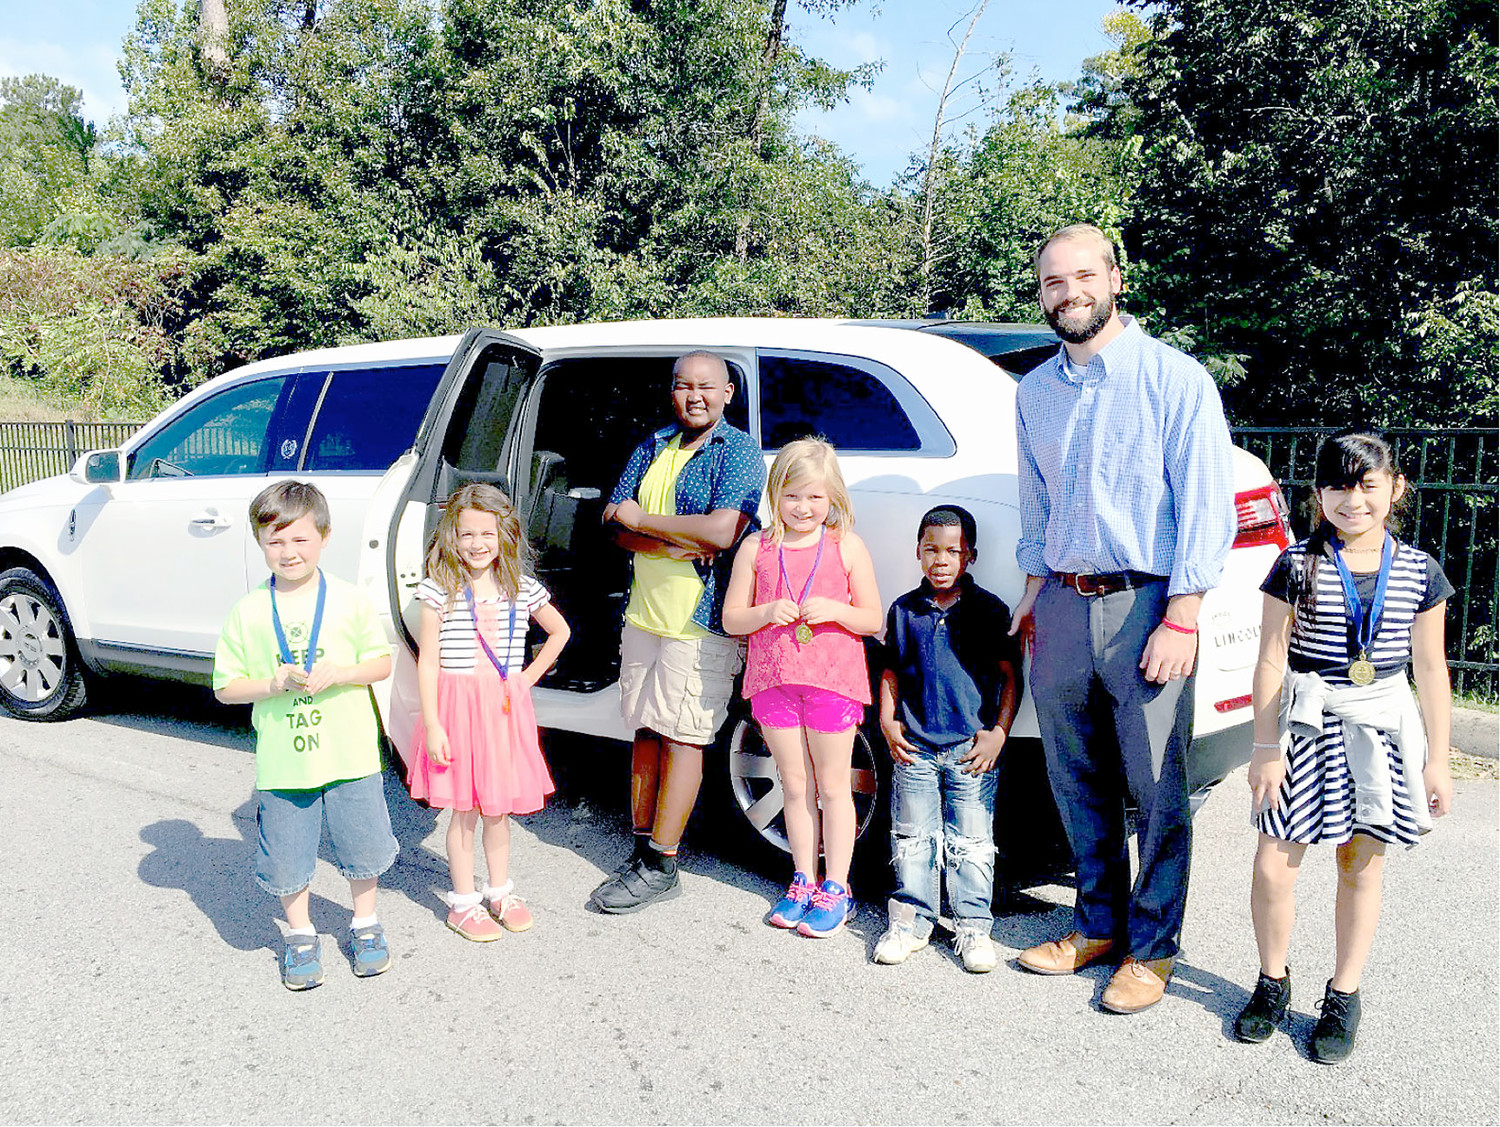 MAYFIELD ELEMENTARY students, along with the school's BEST Partner, Companion Funeral Home, took a limo ride to Jenkin's Deli for lunch.  These students were chosen because of upstanding citizenship and great character. Pictured, from left, are Pictured:  Bryce Cowan, Grace Ramos, T.J. Lisulo, Atti Crisp, Elijah Zachary, Daniel Pierce of Companion Funeral Home, and Carolina Ron Silva.